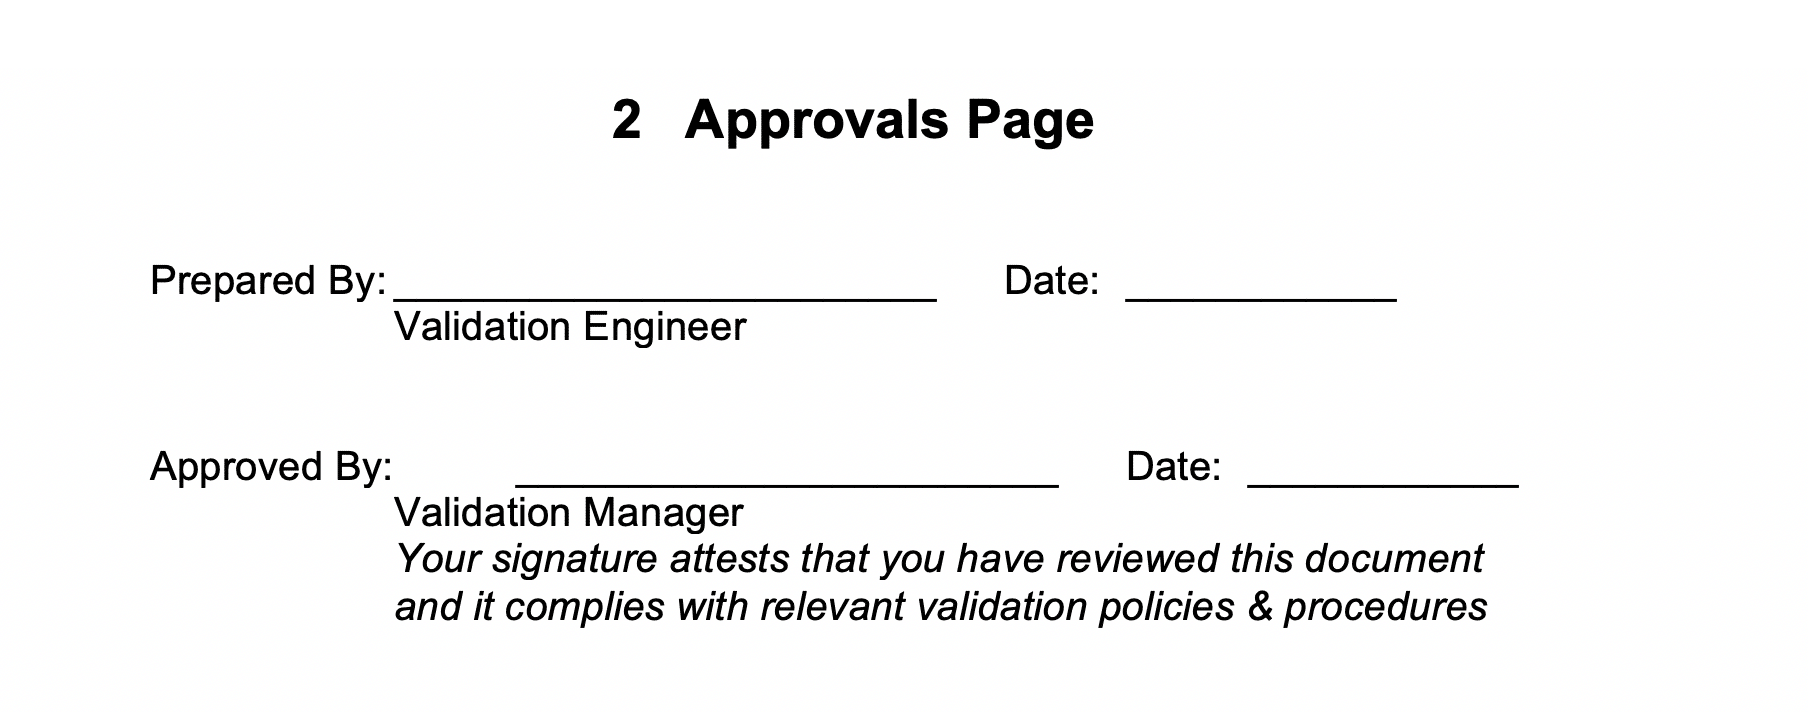 Approvals Page GetReskilled